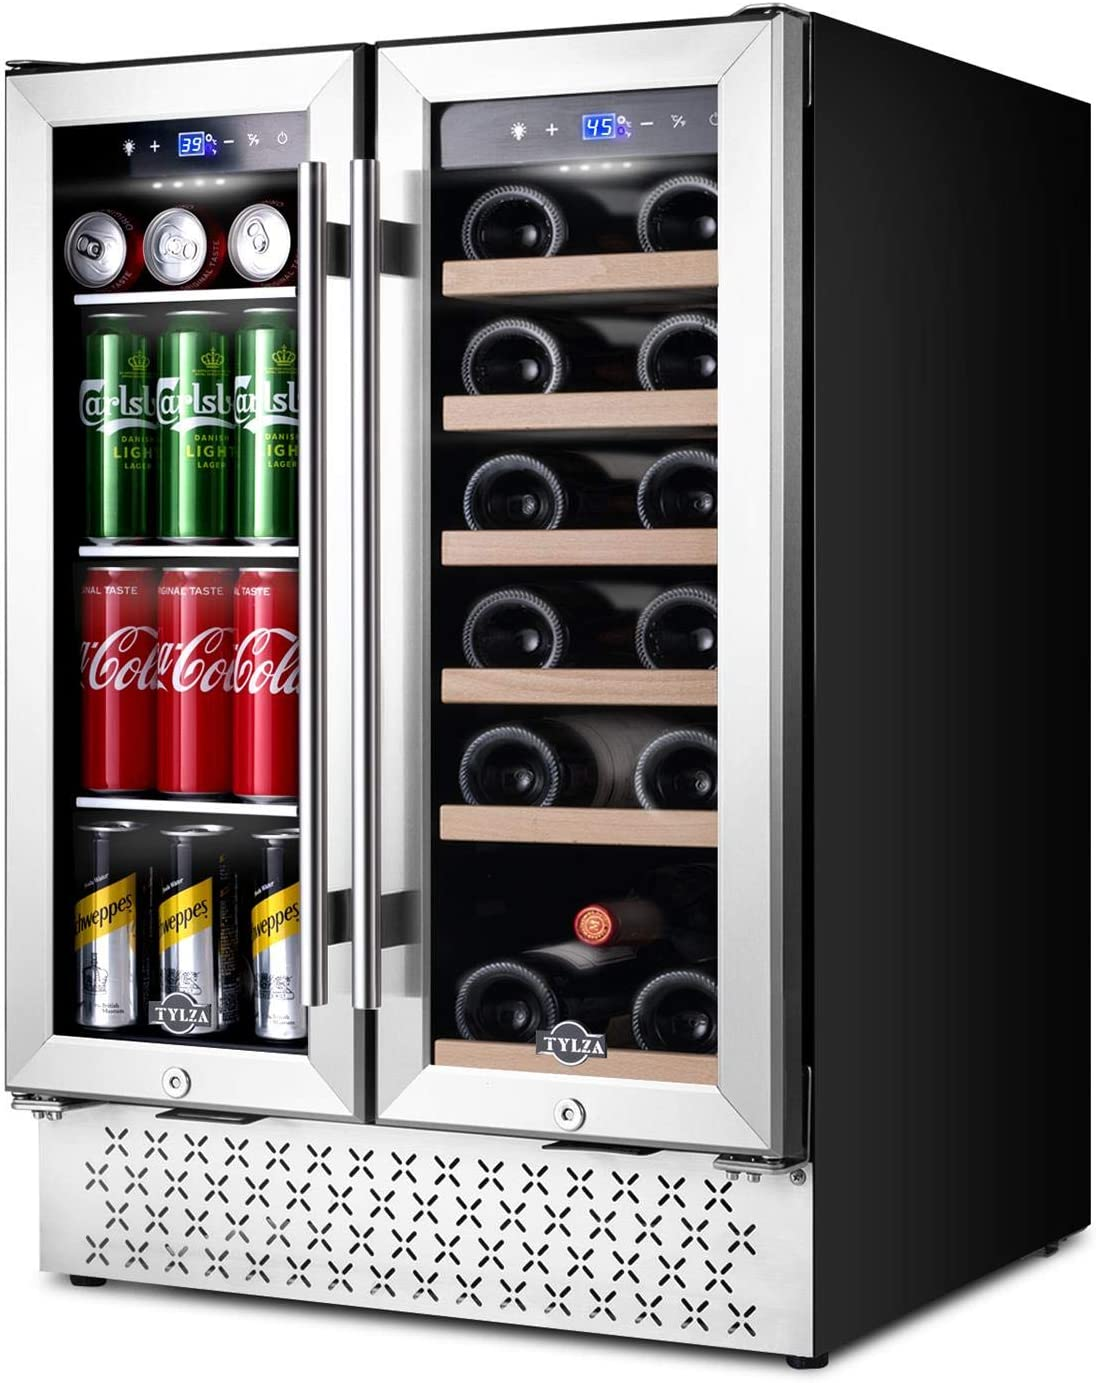 Beverage and Wine Cooler 24 Inch, Dual Zone Wine Beverage Refrigerator with Memory Temperature Control, Quick Cooling Wine Beer Mini Fridge, Built-in or Freestanding, Quiet Operation, Hold 18 Bottles and 57 Cans